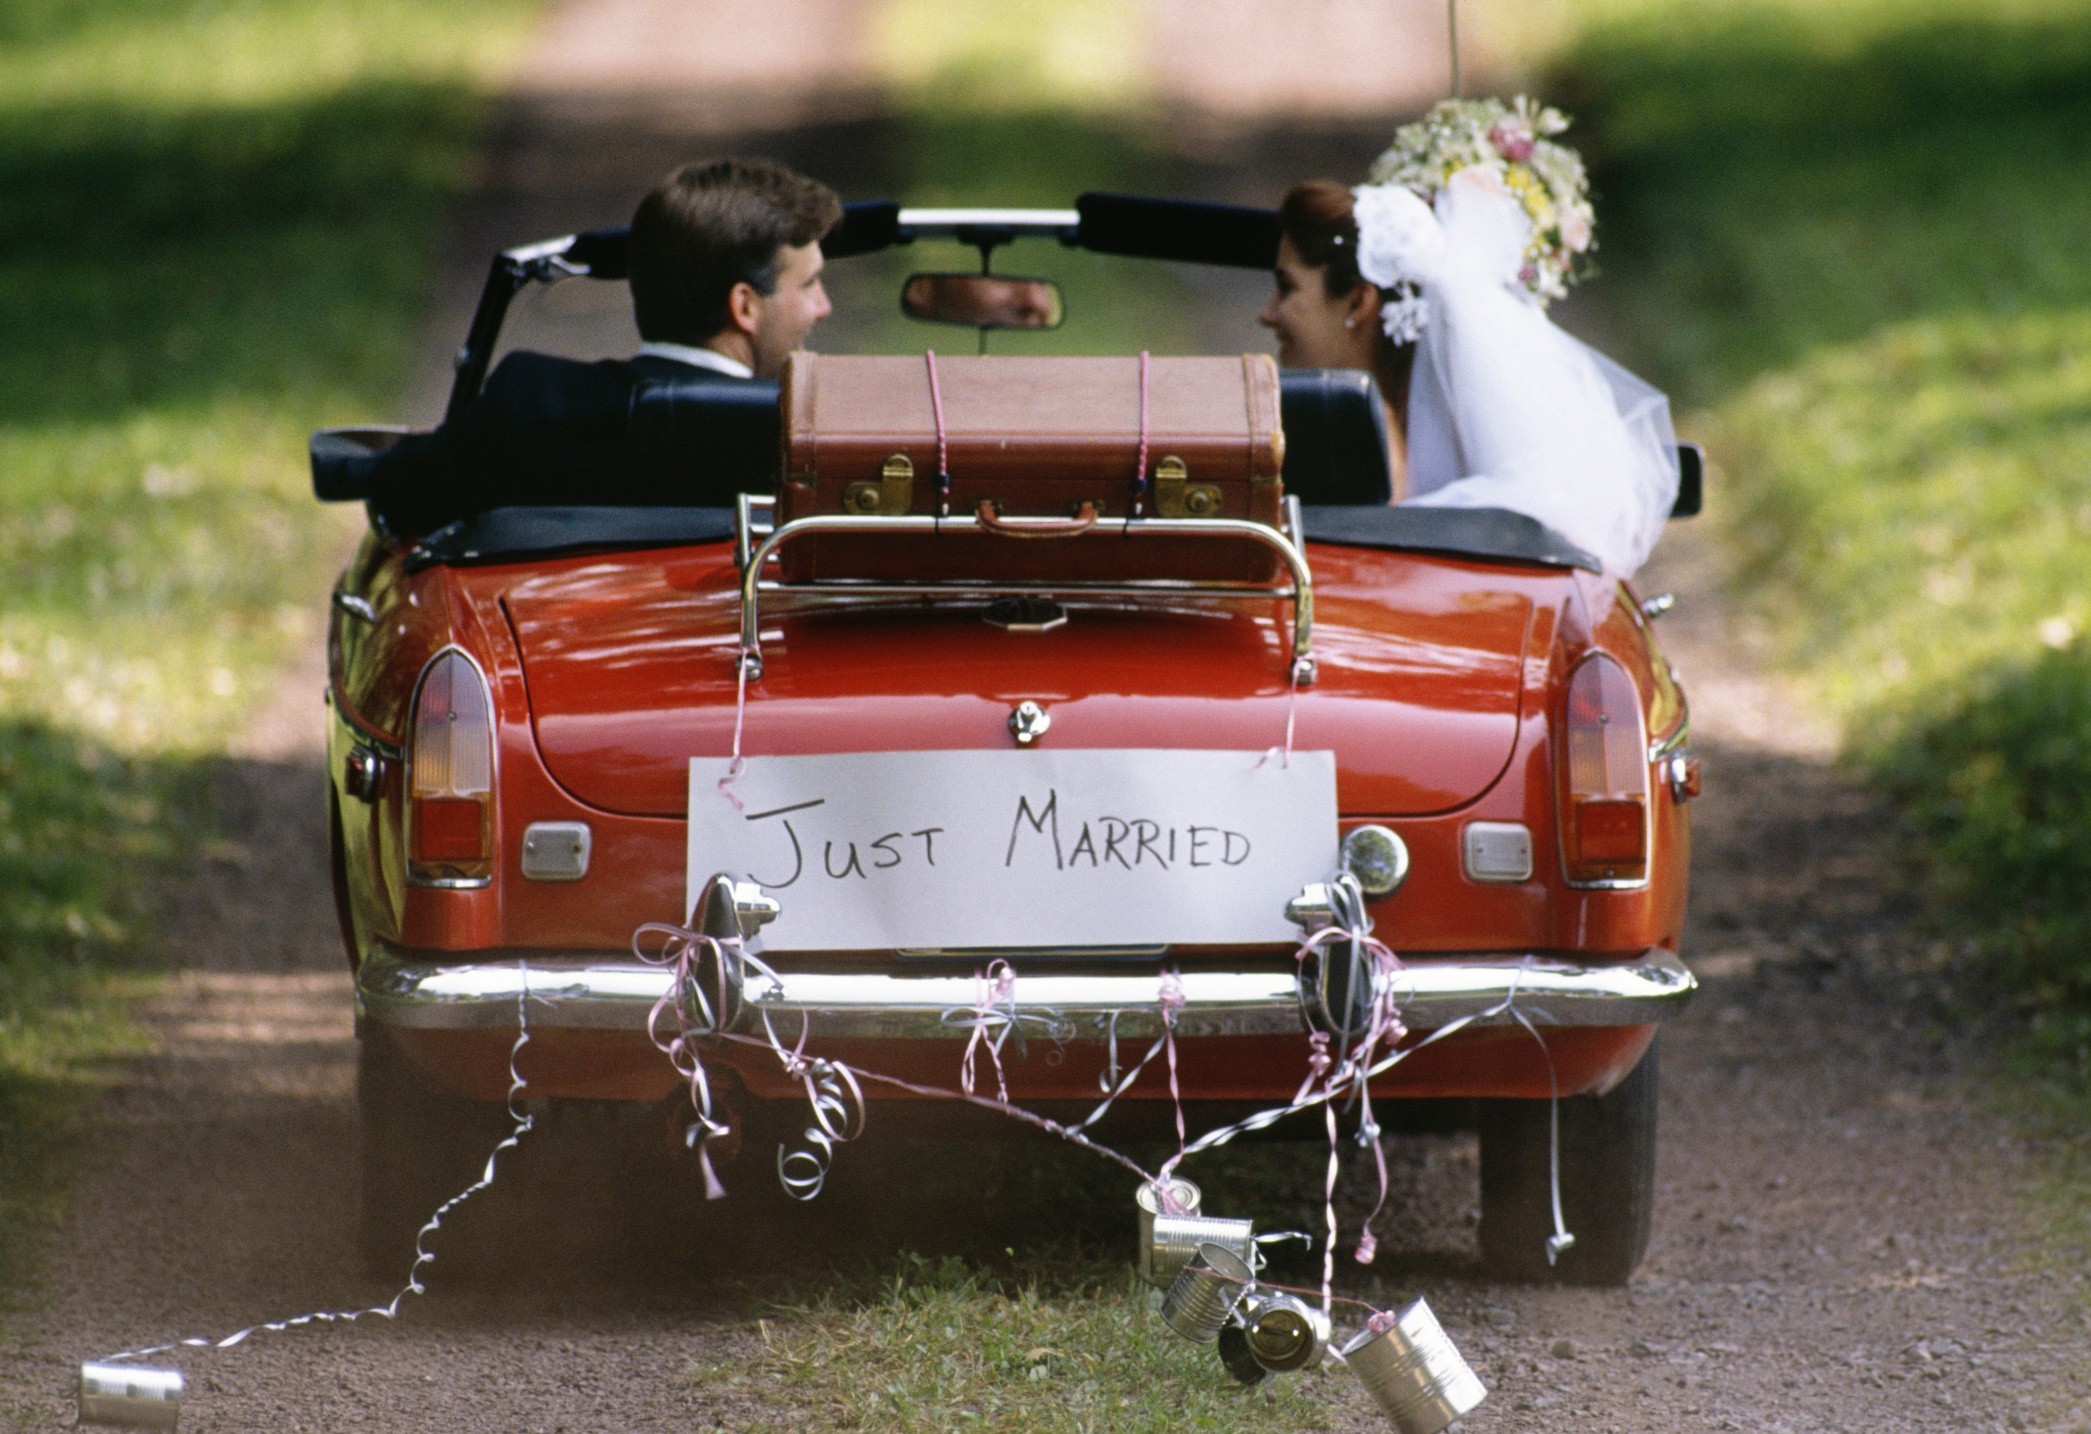 As A Newlywed, You Anticipate Change, But You Often Don't Realize That